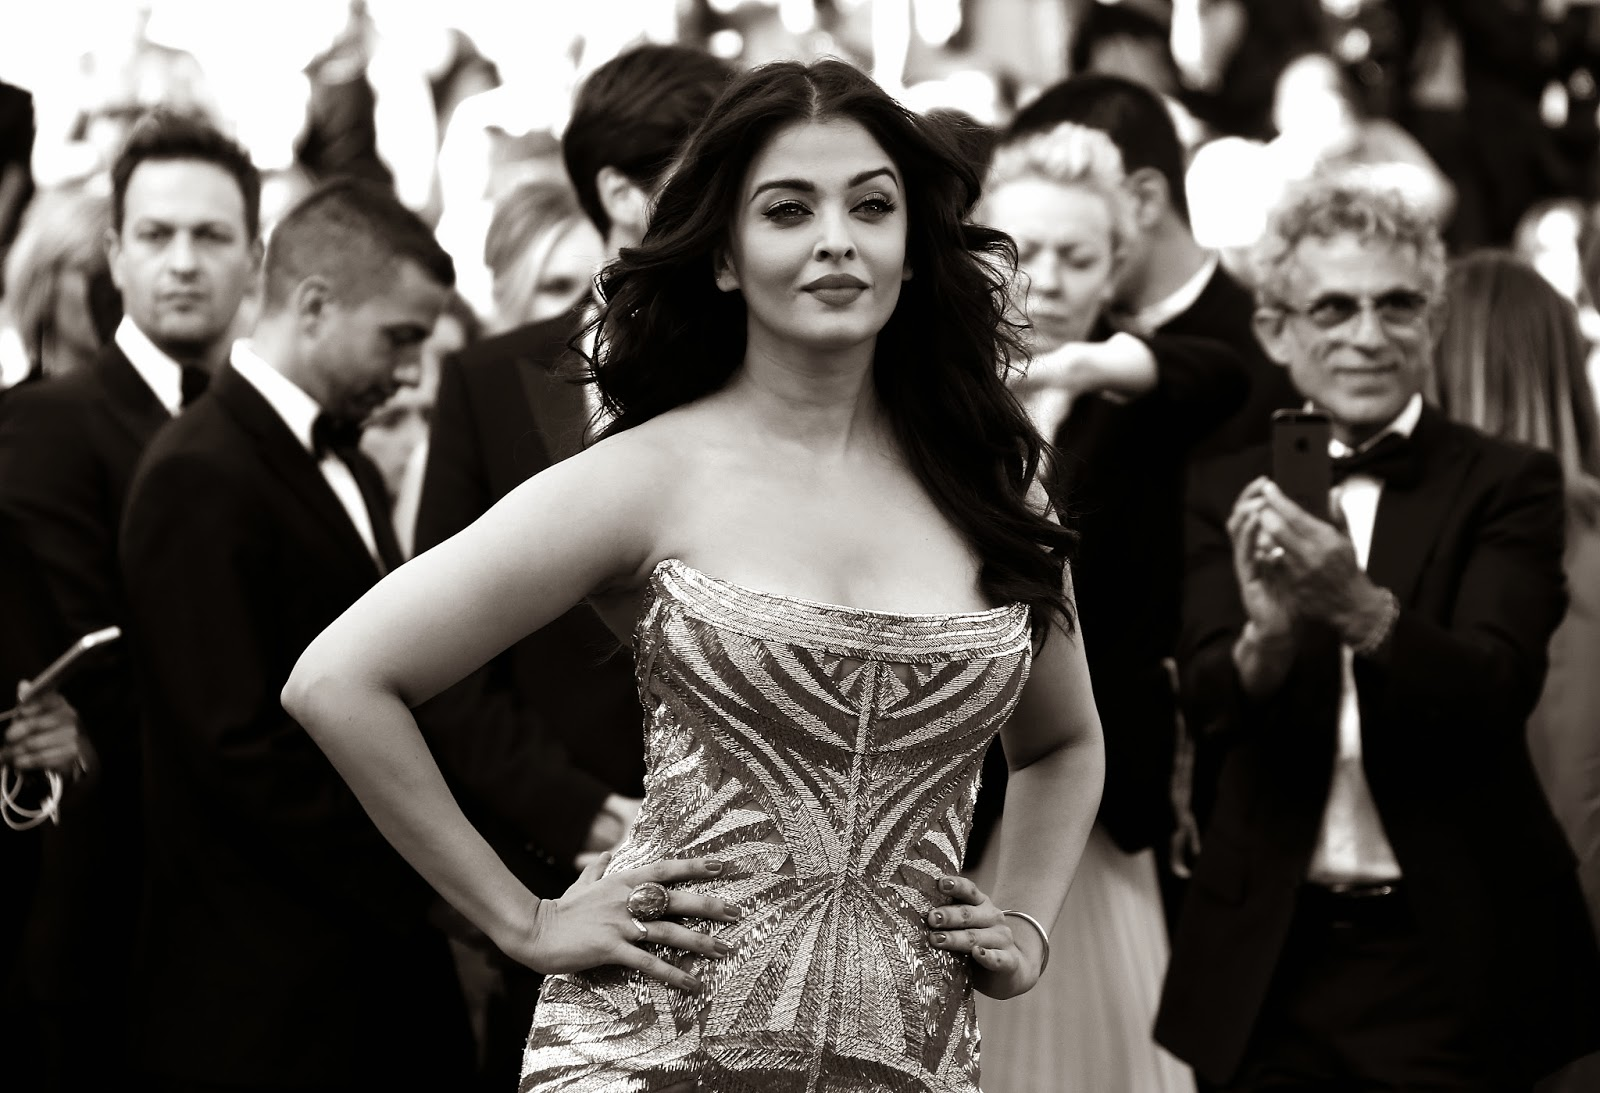 Aishwarya Rai, Aishwarya Rai Photo, Bollywood actress, Cannes, Cannes Festival, Cannes Film Festival, Deux Jours Une Nuit, Entertainment, Film, France, Showbiz, Miss World,